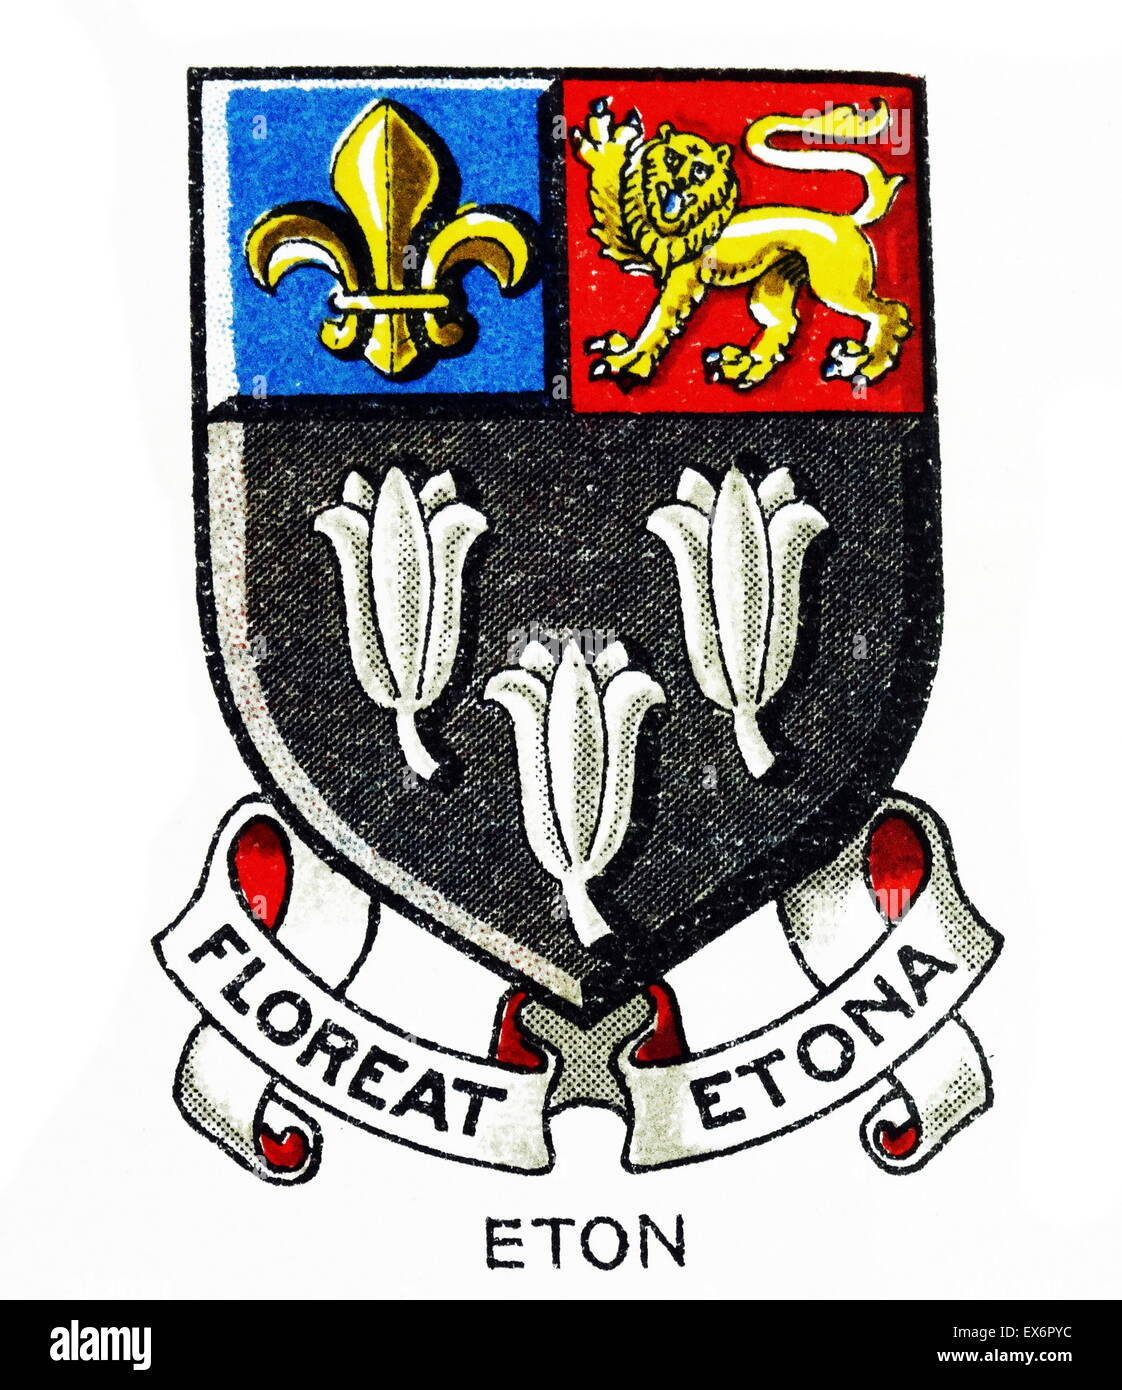 Emblem for Eton College, often informally referred to simply as Eton, an English independent boarding school located - Stock Image